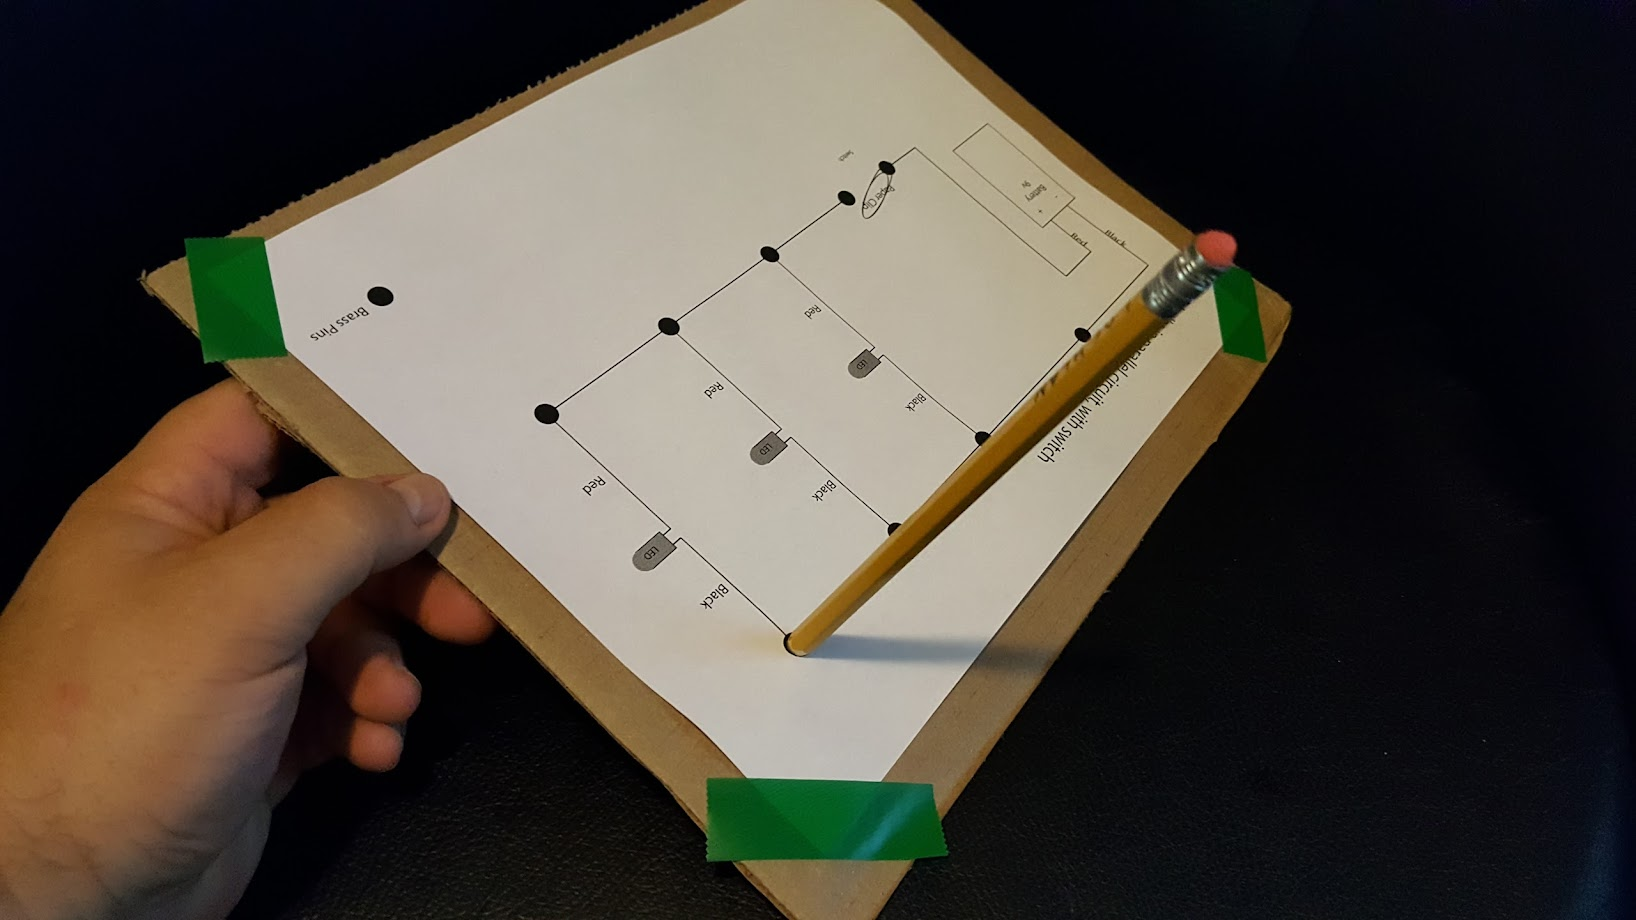 Scout Dad Texas Webelos Elective Adventures In Science Building And Parallel Circuits For Kids Worksheets Series Its Best To Put Them Either Side Of The Hole Support It Or Board So Hold Is Just Off Edge Table As Shown